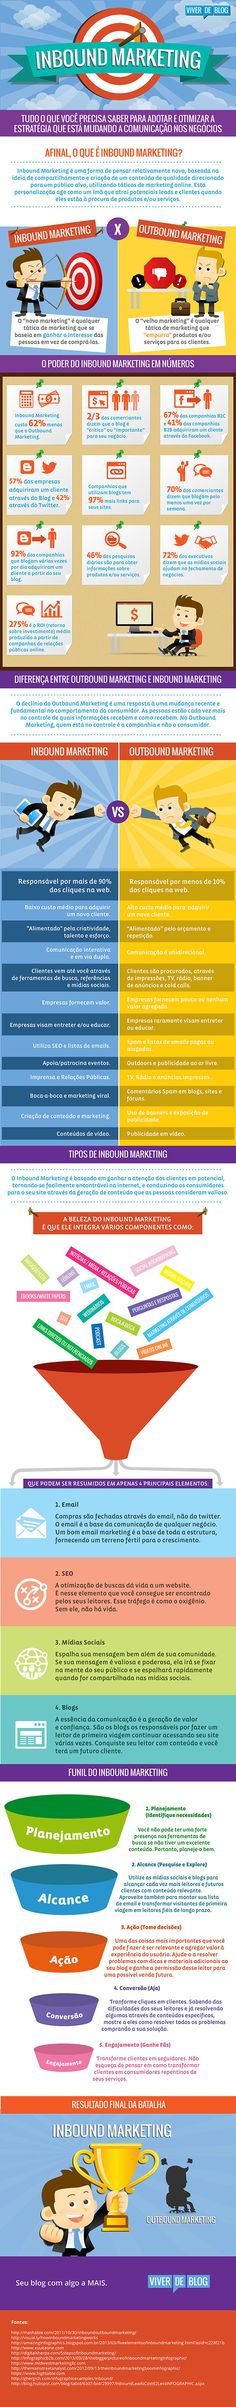 Inbound Marketing - Infográfico